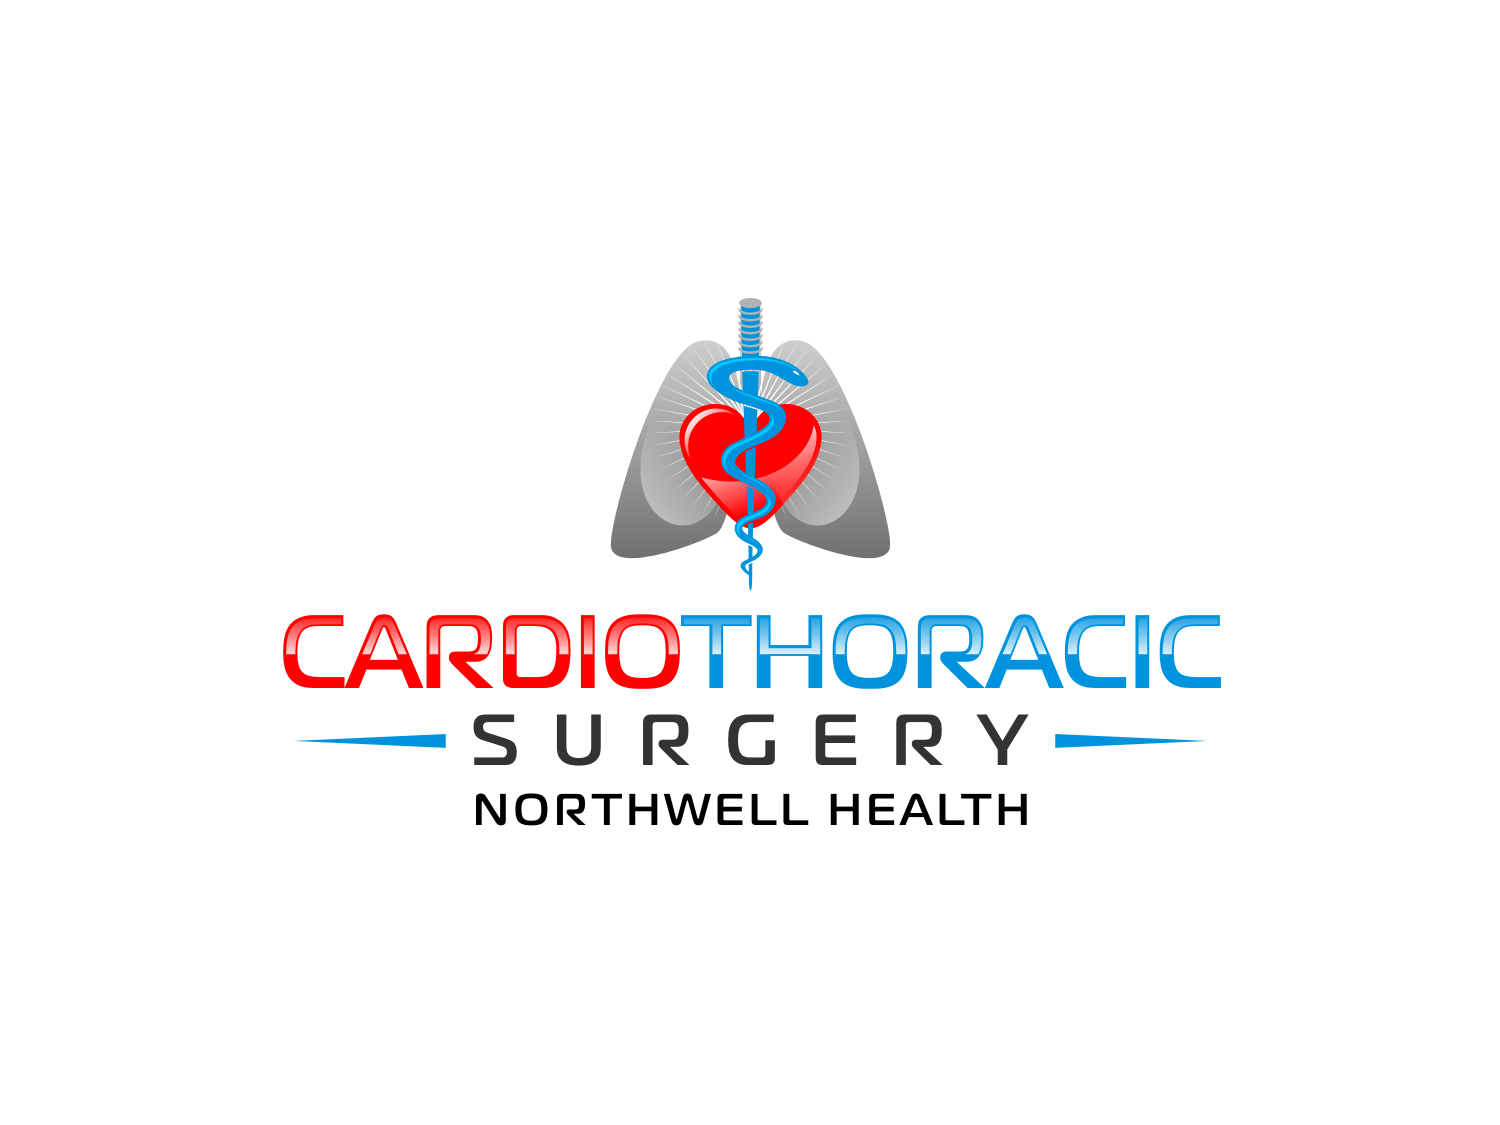 Elegant Serious Logo Design For Cardiothoracic Surgery Northwell Health By R16 Design 15859307